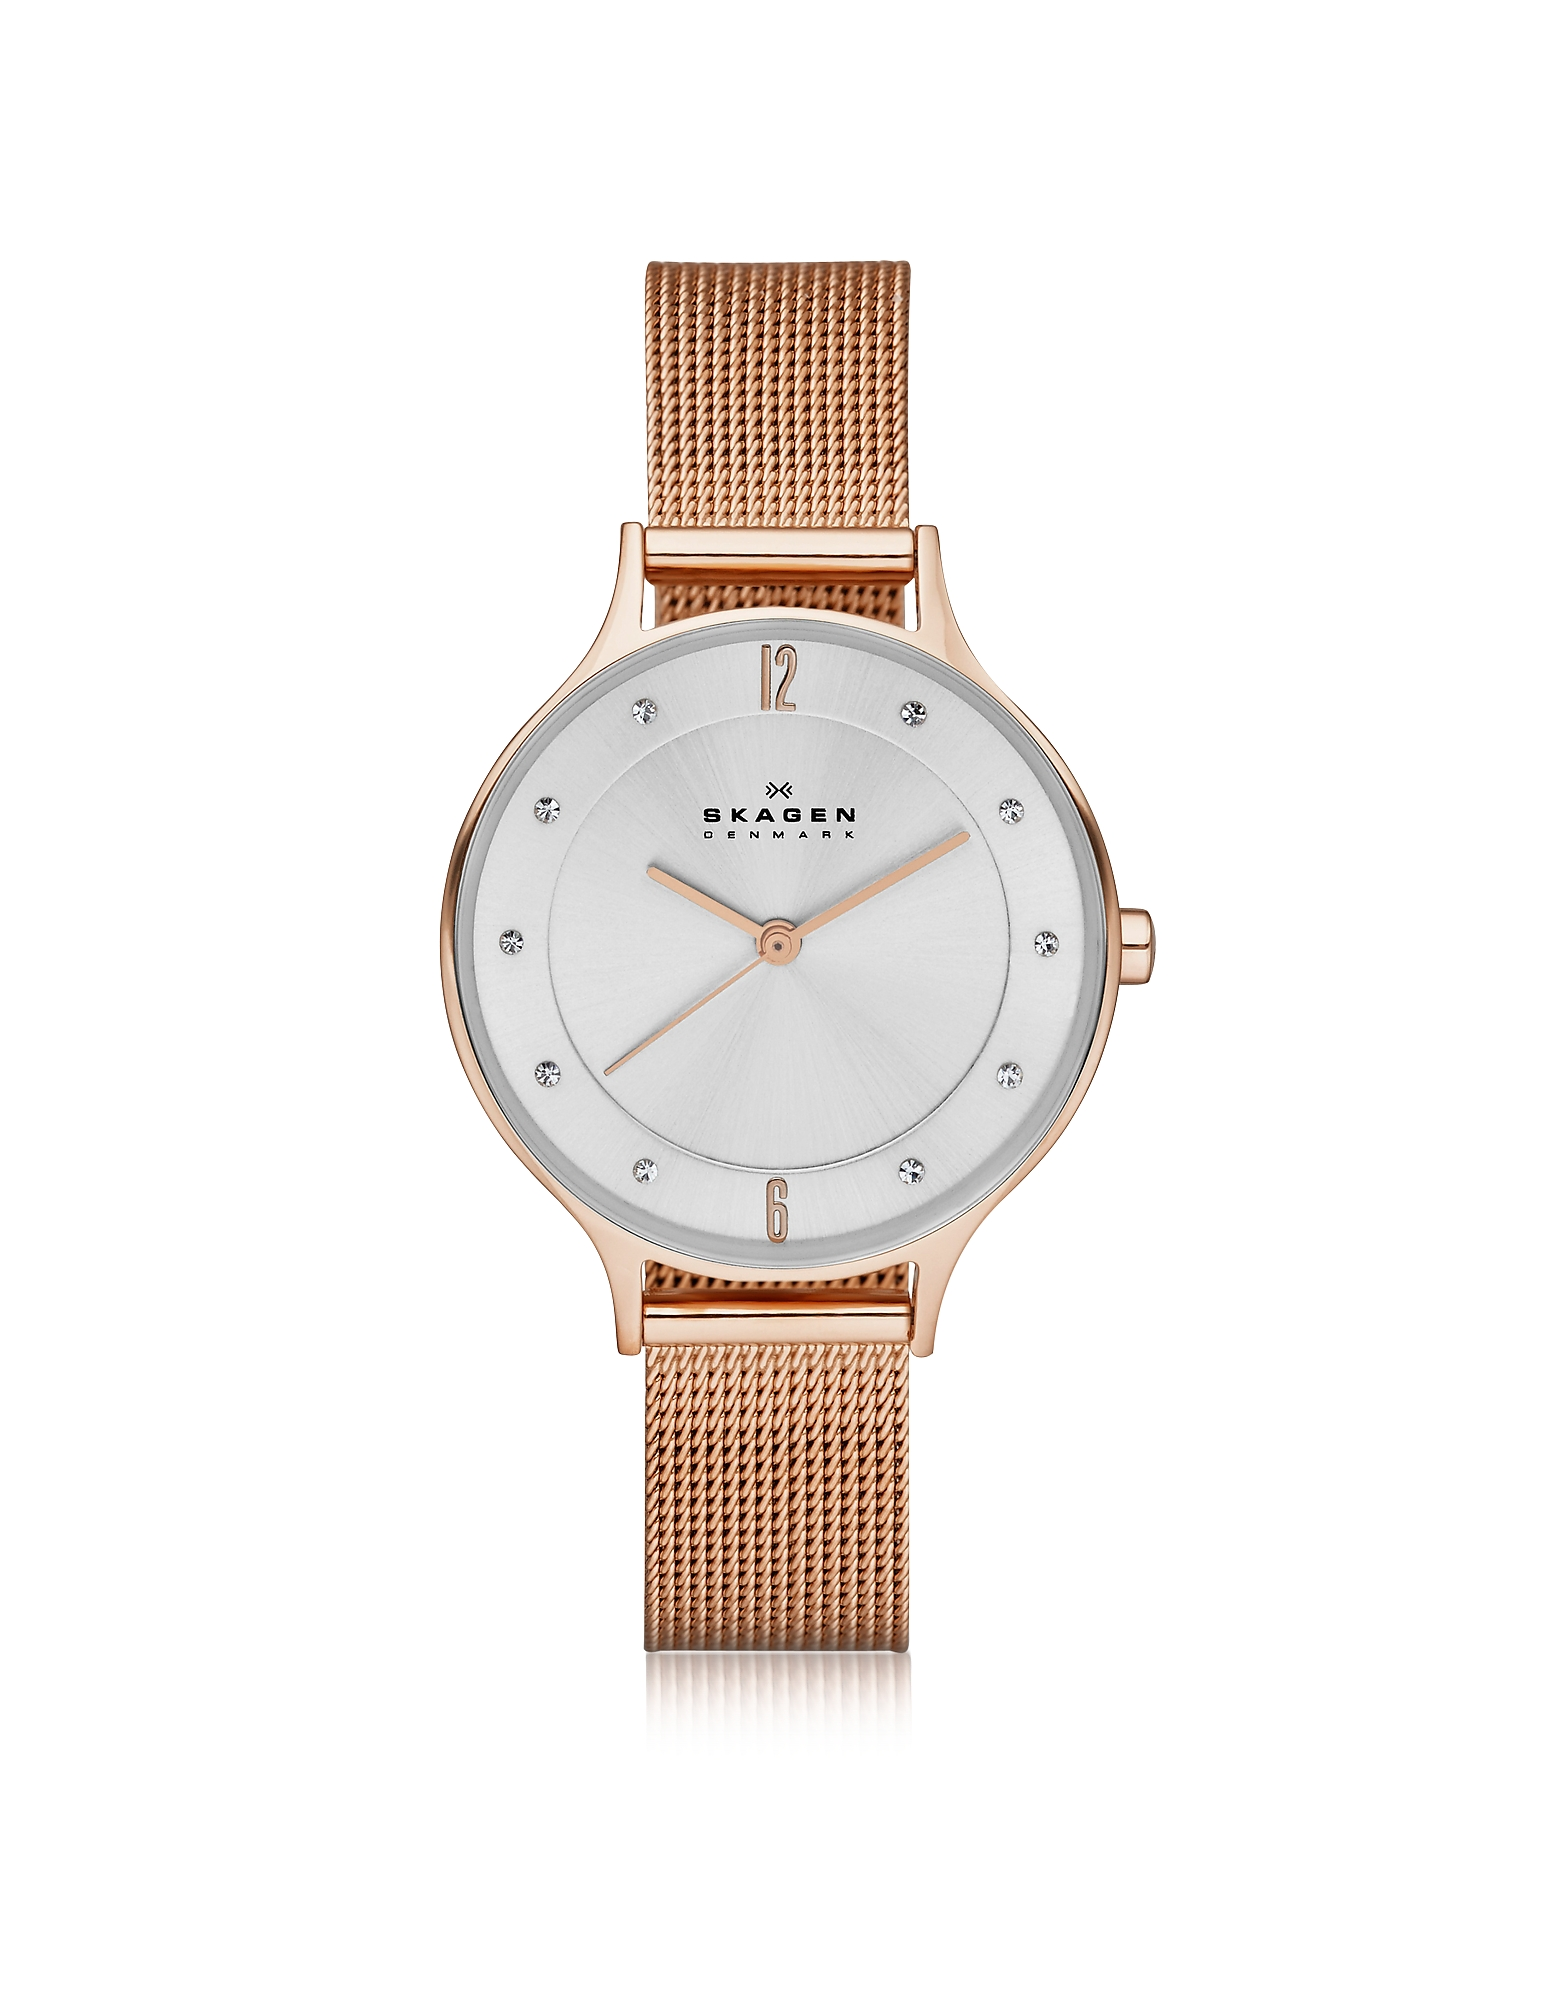 Skagen Women's Watches, Anita Rose Goldtone Stainless Steel Women's Watch w/Mesh Bracelet Band